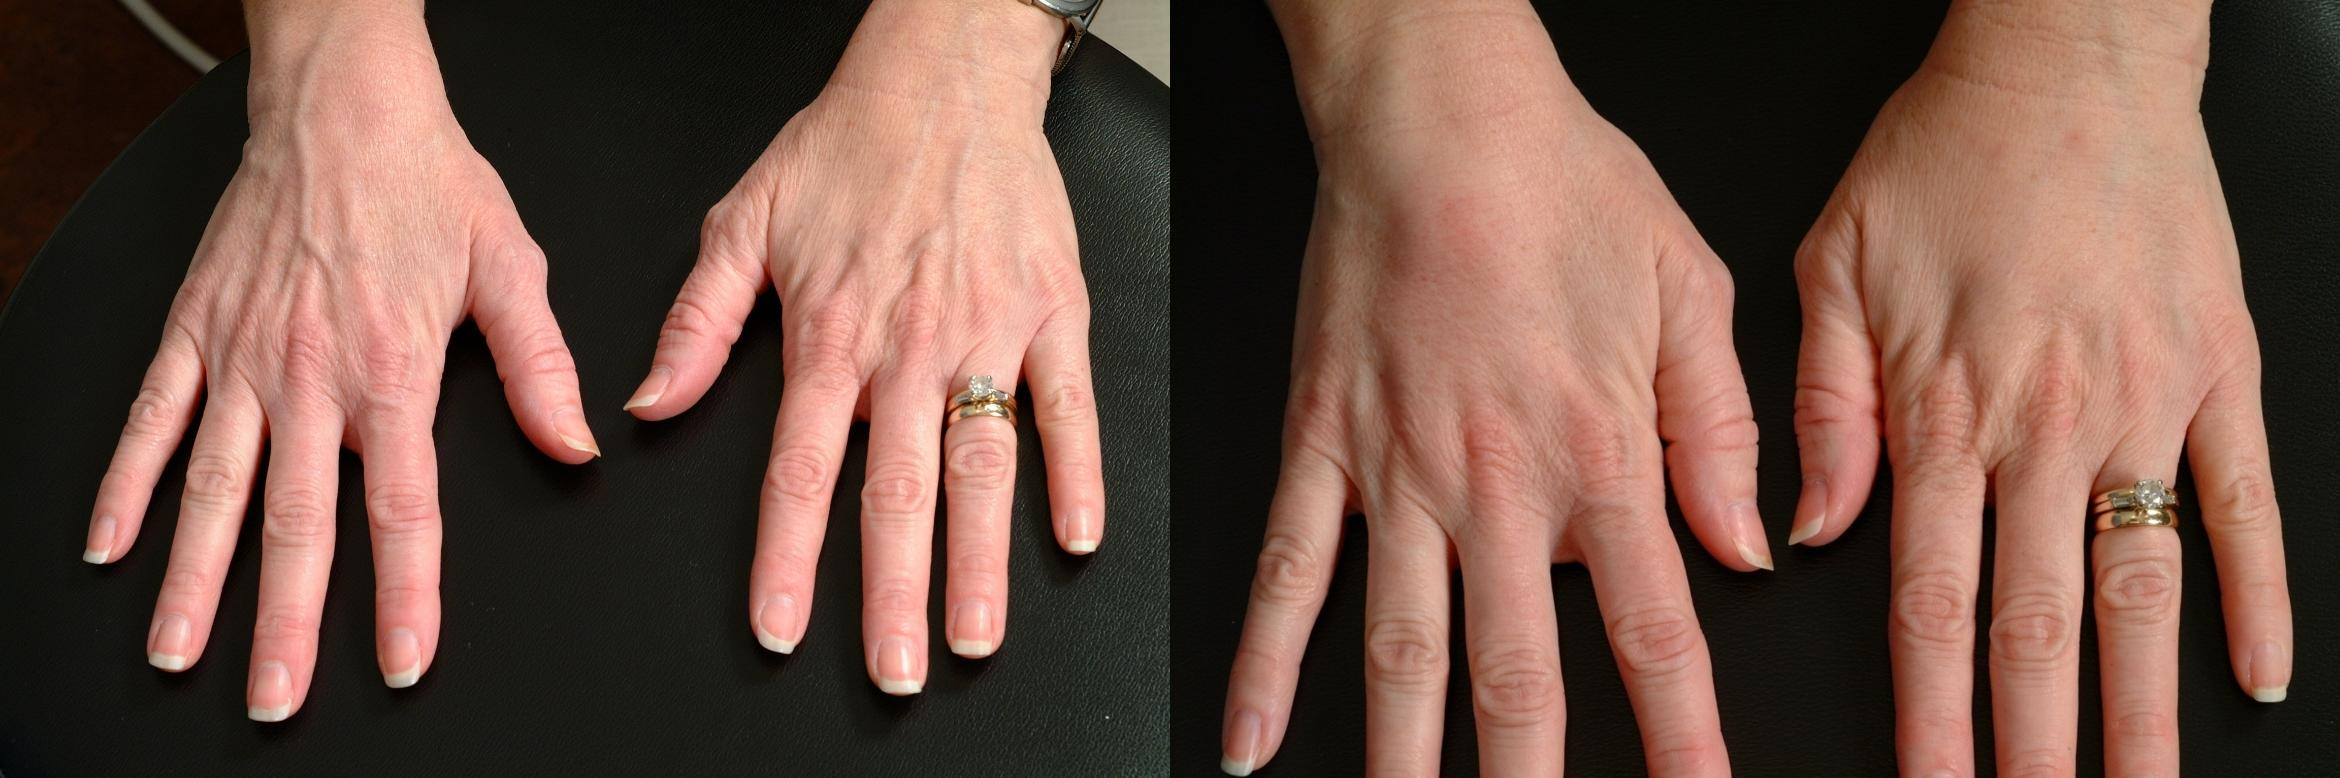 Hand Rejuvenation Case 631 Before & After Back | Louisville, KY | CaloSpa® Rejuvenation Center